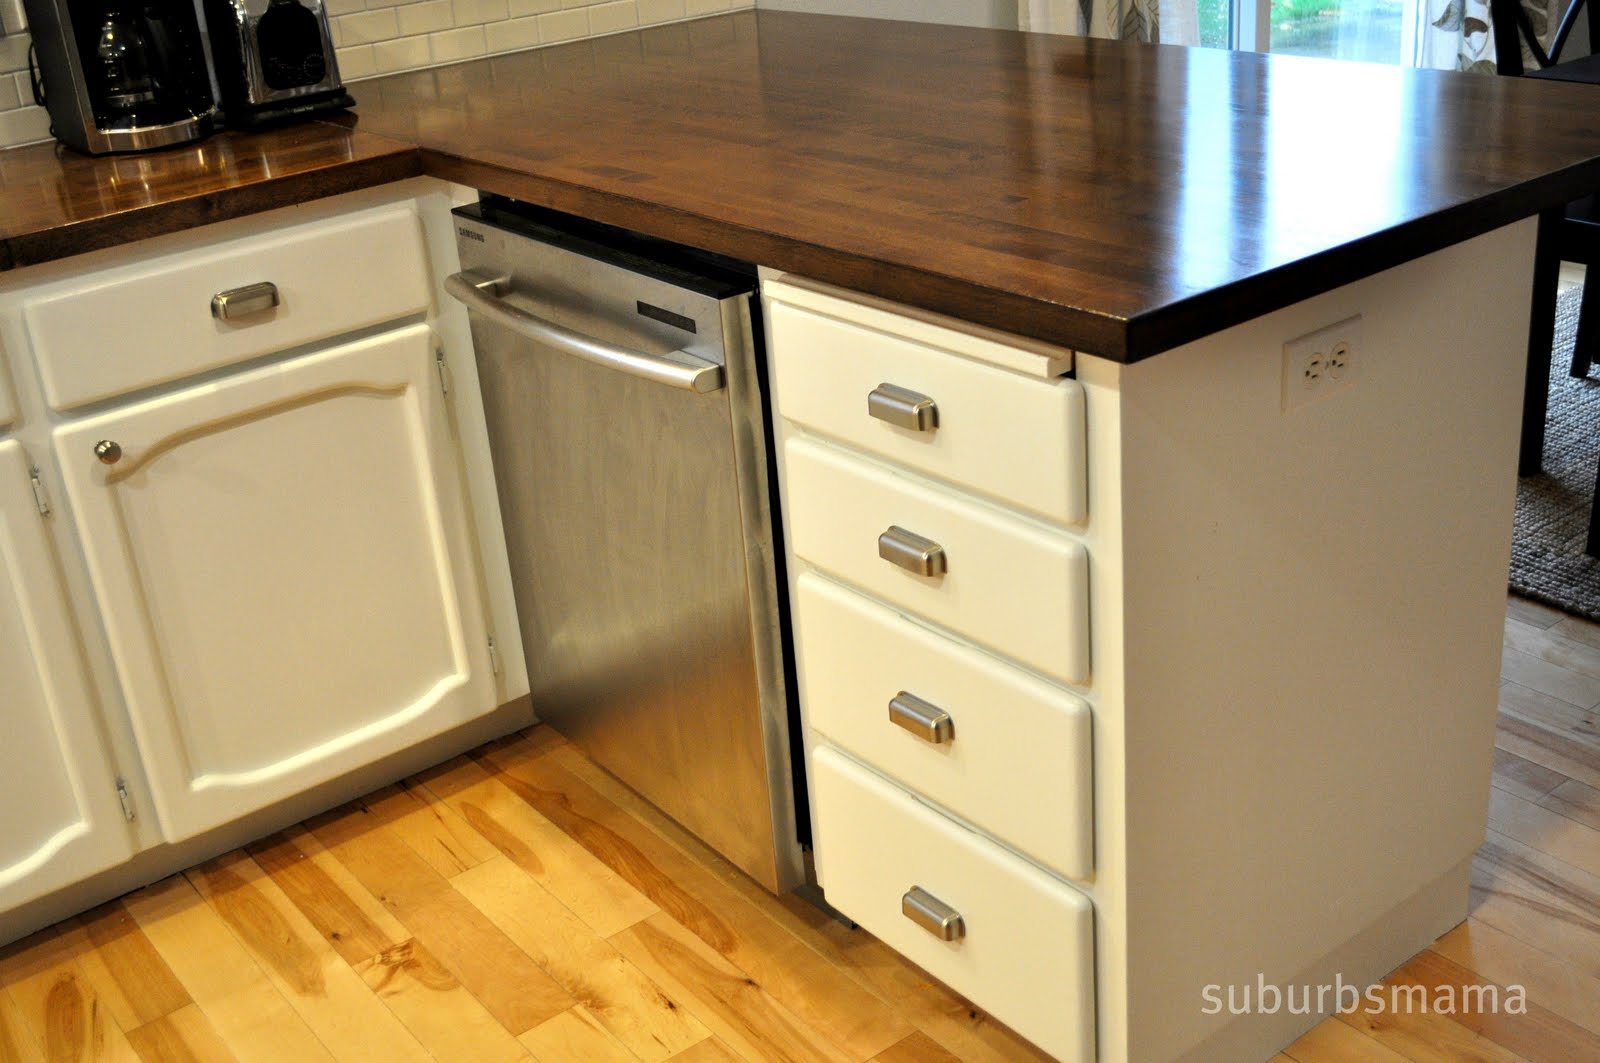 Suburbs mama kitchen tour for Are ikea kitchen cabinets made of solid wood